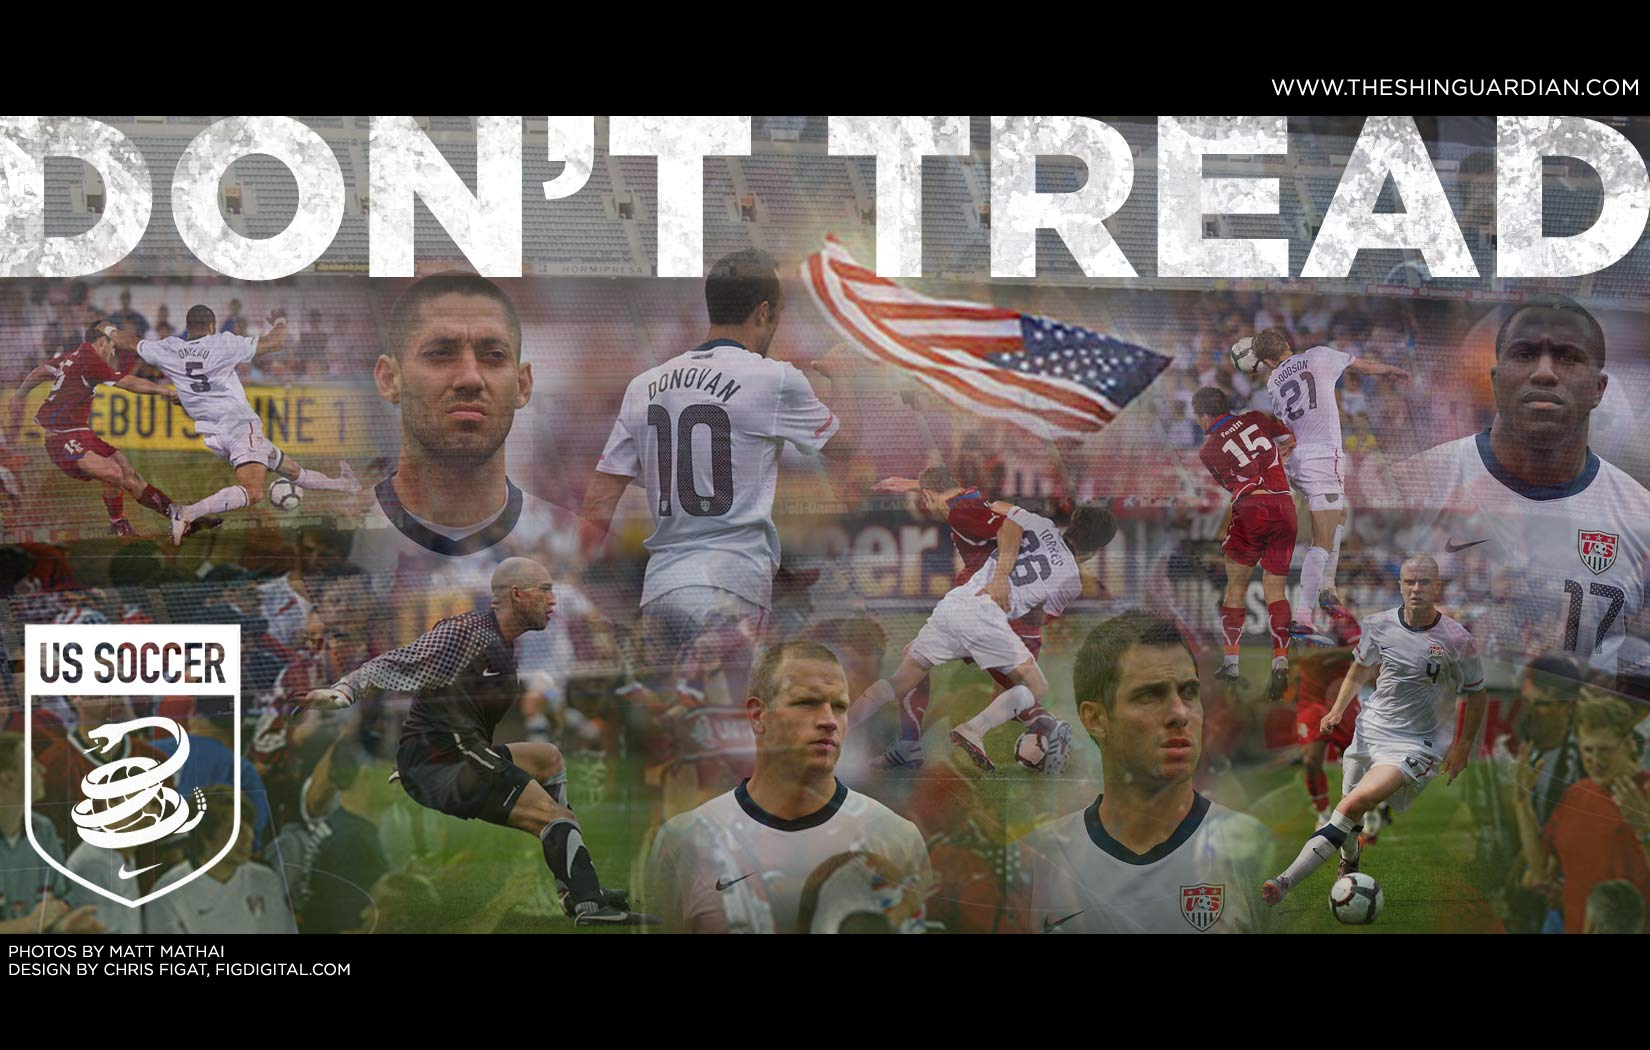 More USMNT Computer Wallpaper The Shin Guardian 1650x1050